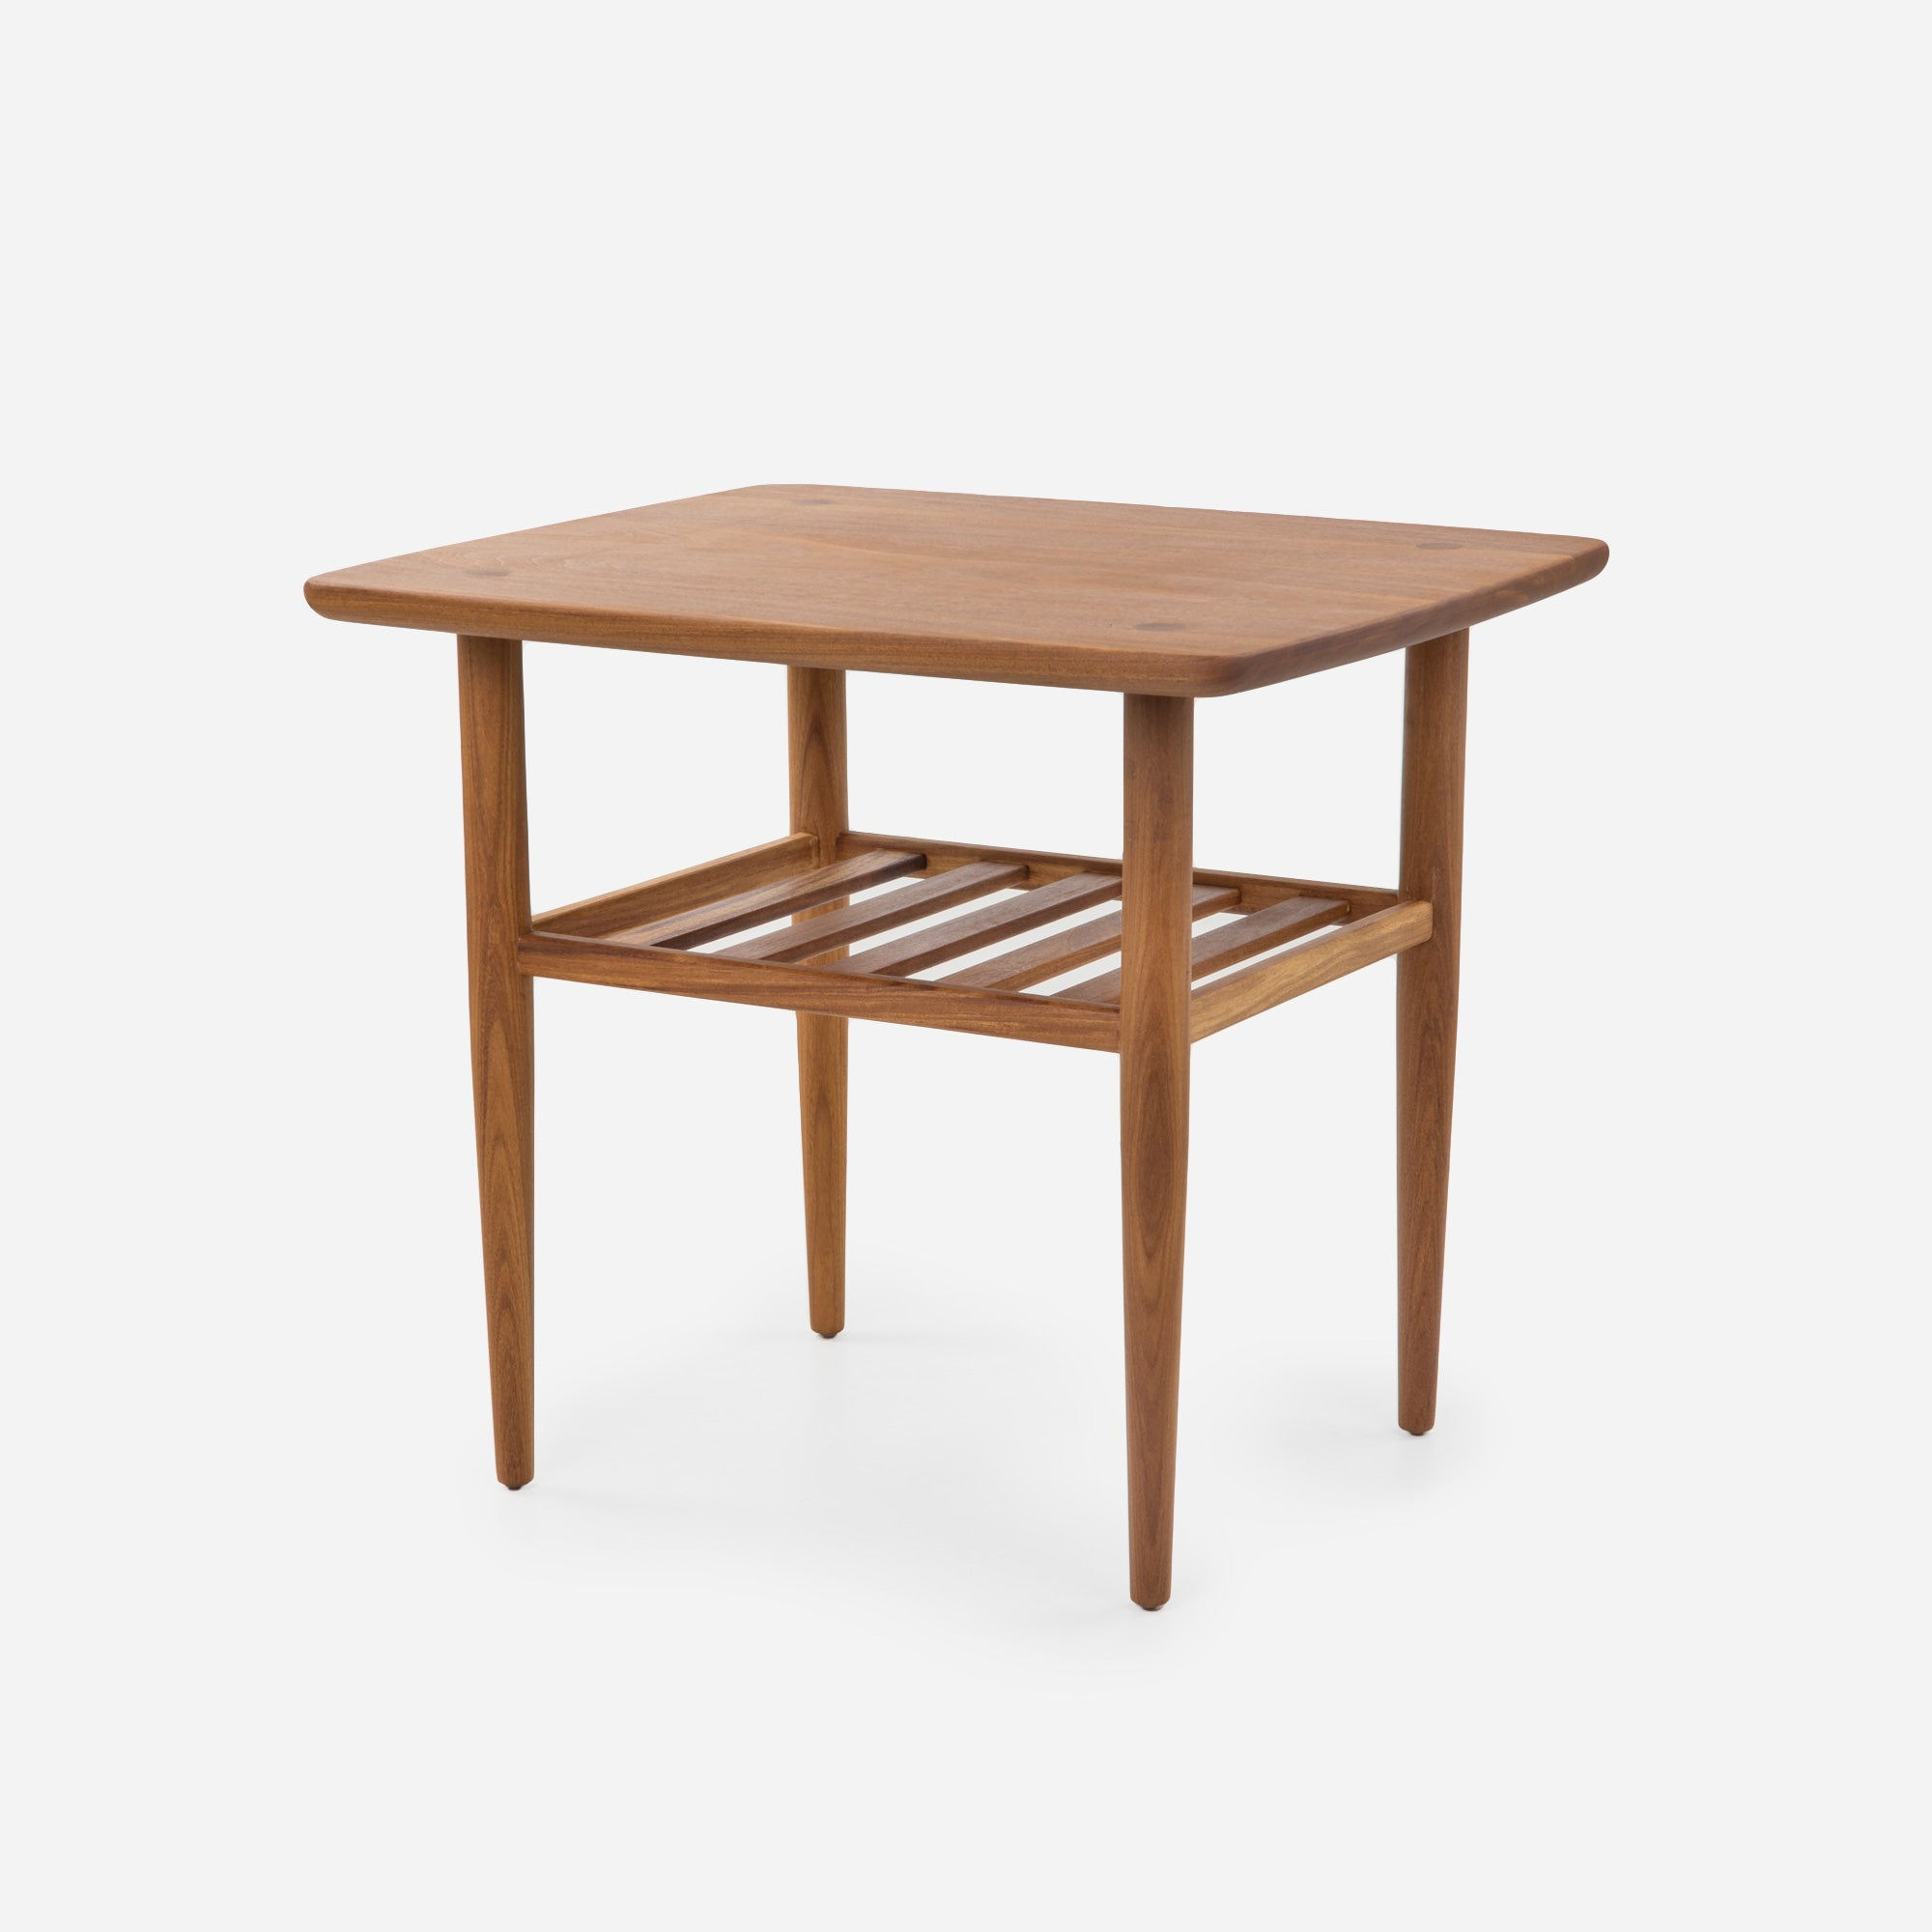 Case study furniture solid wood end table with tapered edge